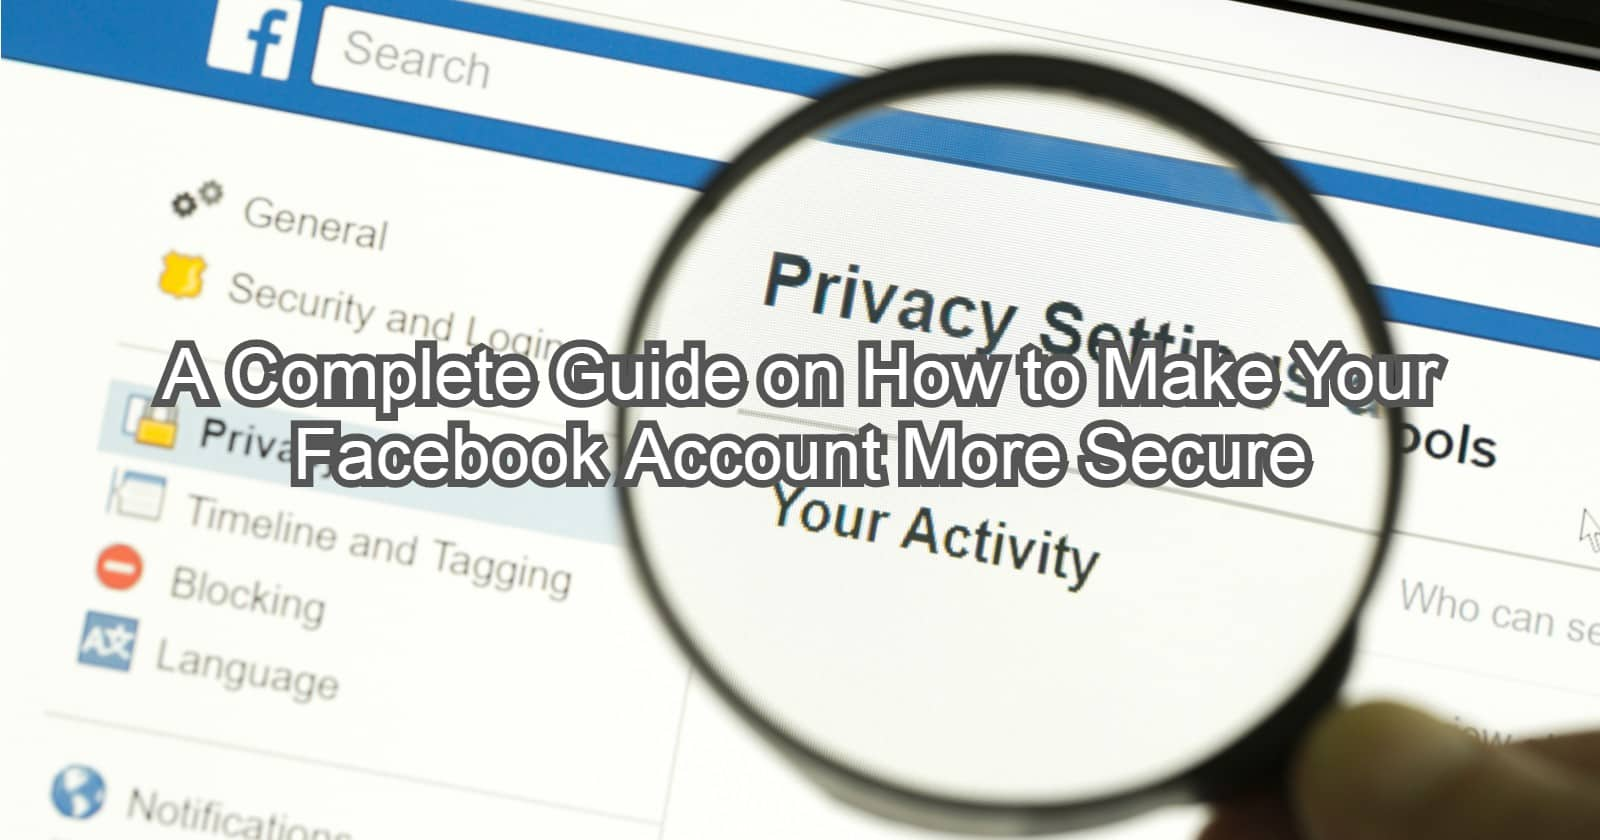 A Complete Guide on How to Make Your Facebook Account More Secure